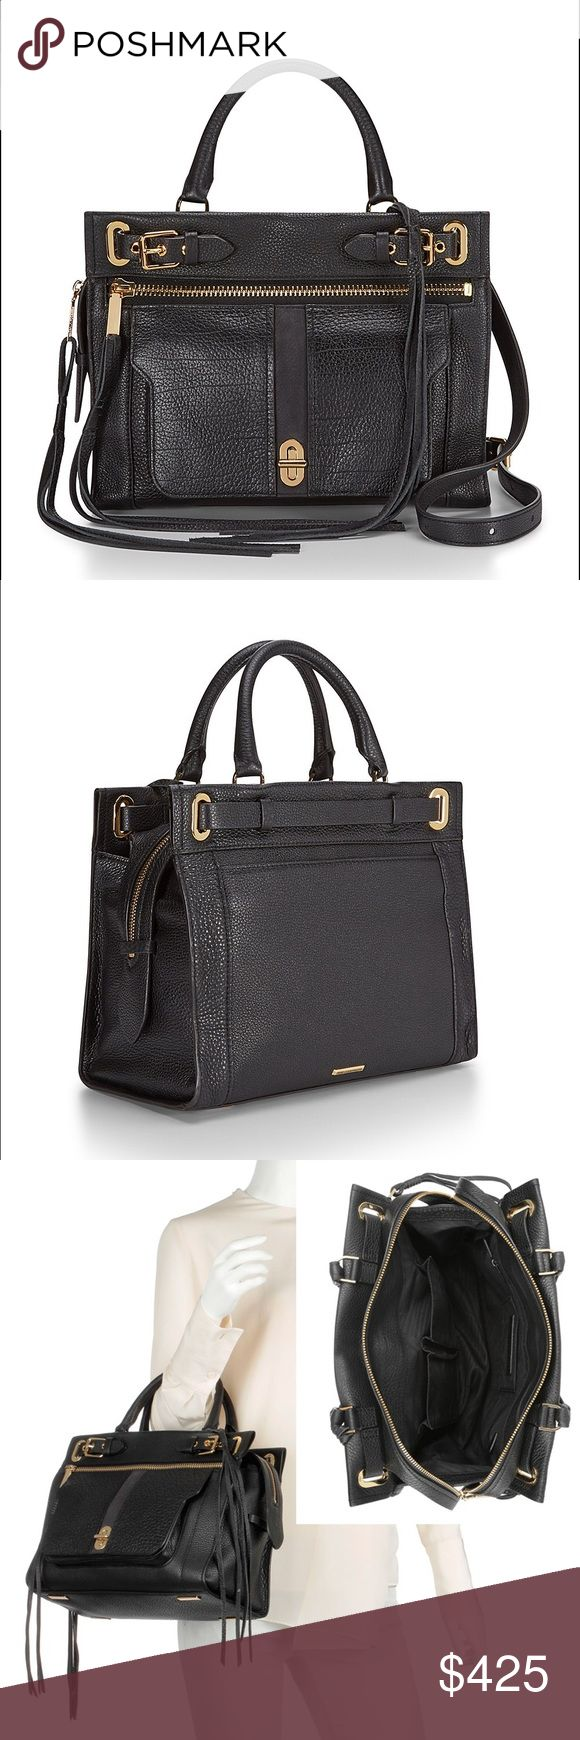 "Rebecca Minkoff Lyon Satchel - Black From web: Leather, zipper and belt details come together to form this career bag for rebel girls. The main compartment can hold iPad, wallet and pouches, while exterior pockets give you quick access to your essentials. Sling on your shoulder or carry by the top handles. 12""W x 9""H x 6""D. Genuine leather. 22"" adjustable shoulder strap. 4"" handle drop. Custom gold hardware. Exterior zip pocket, and slip compartment w/ turn lock closure. Top zip closure. 2…"